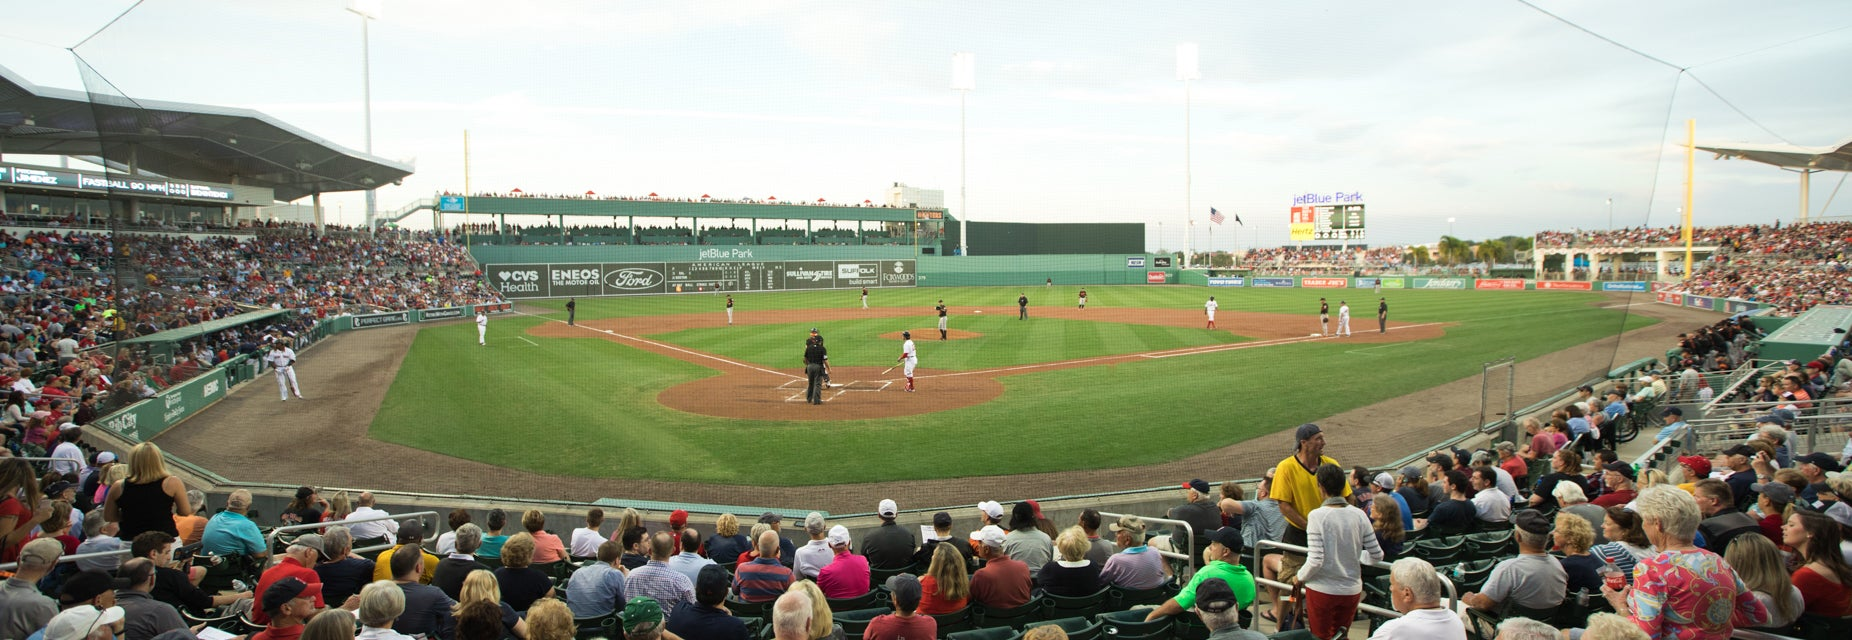 Seat view from Home Plate